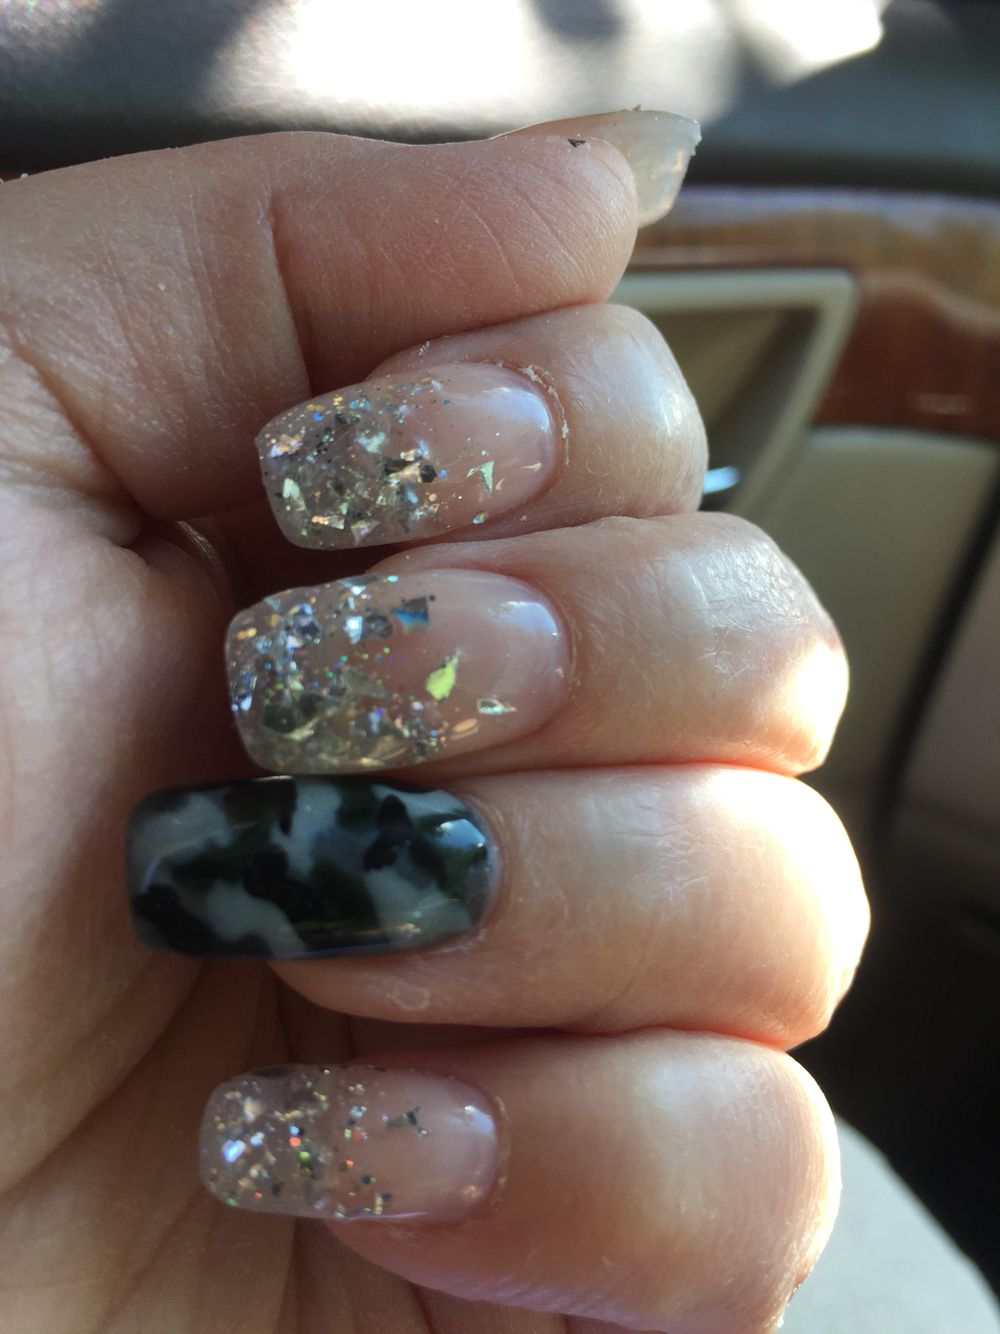 Black And Gray Camo Accent Nail With Silver Flake And Glitter Fade Rock Star Nails For Tesla Concert Camo Nails Rock Star Nails Acrylic Nails